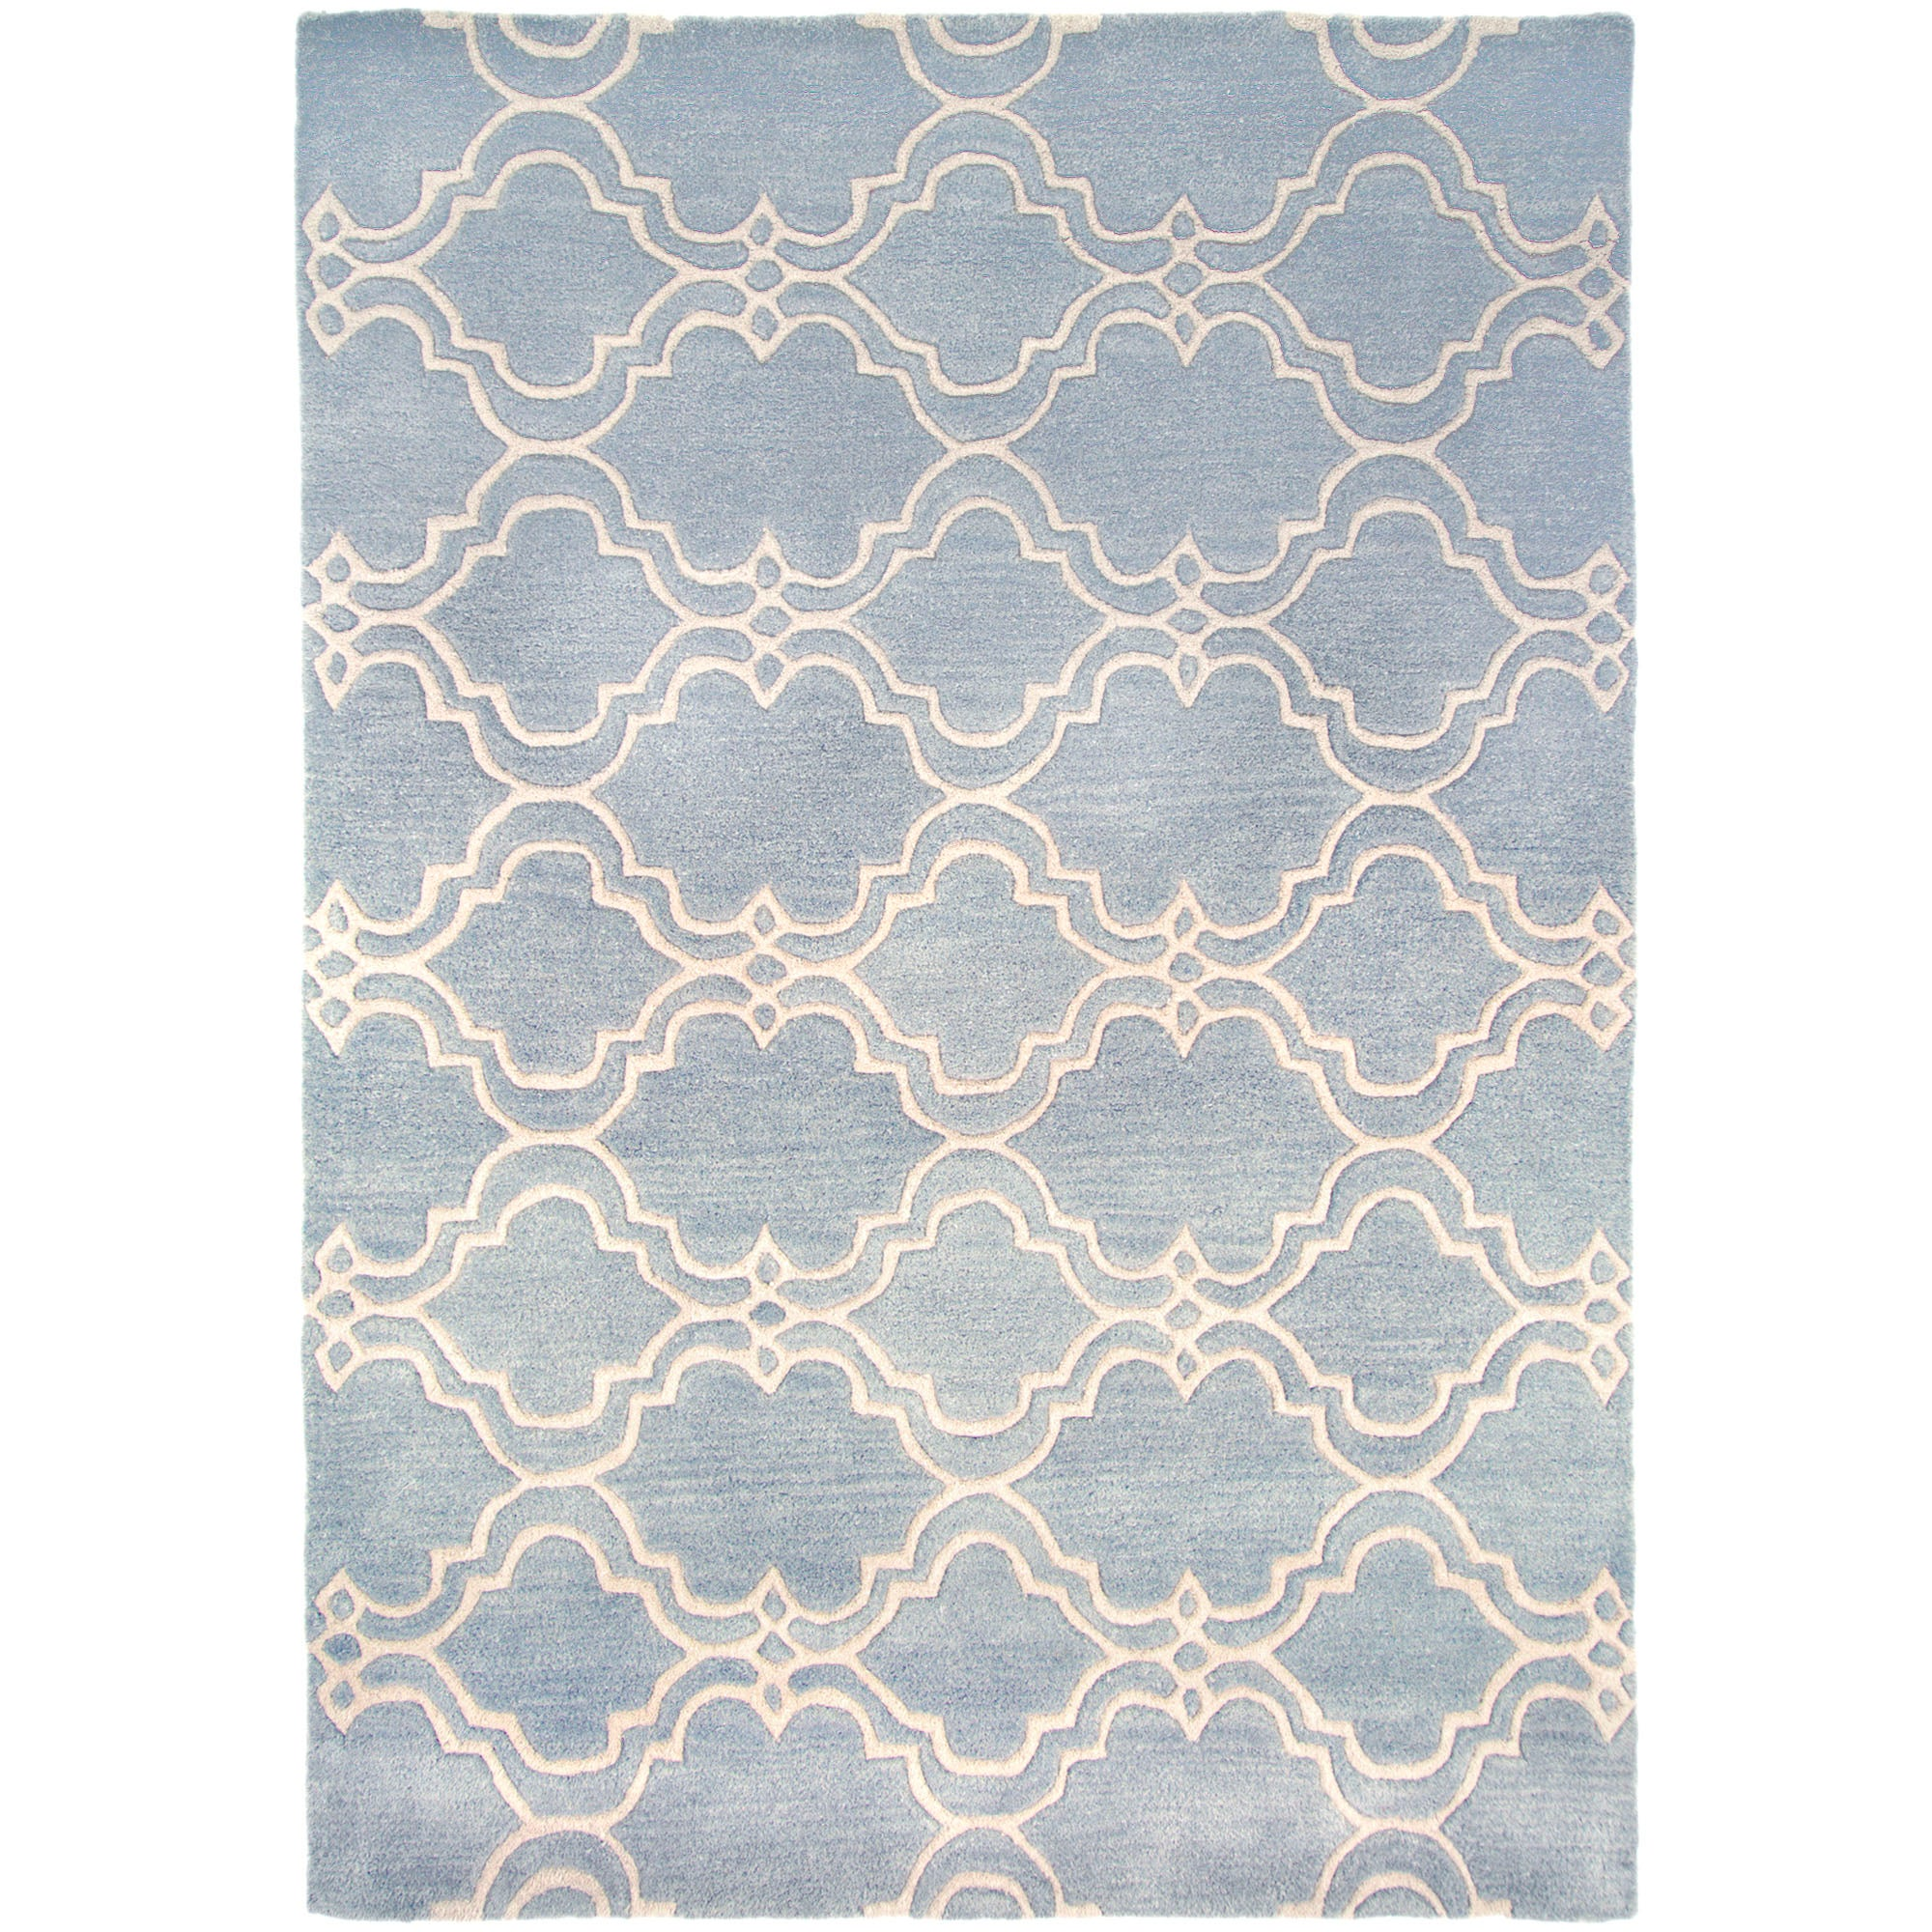 Buy Cheap Duck Egg Rug Compare Flooring Amp Carpeting